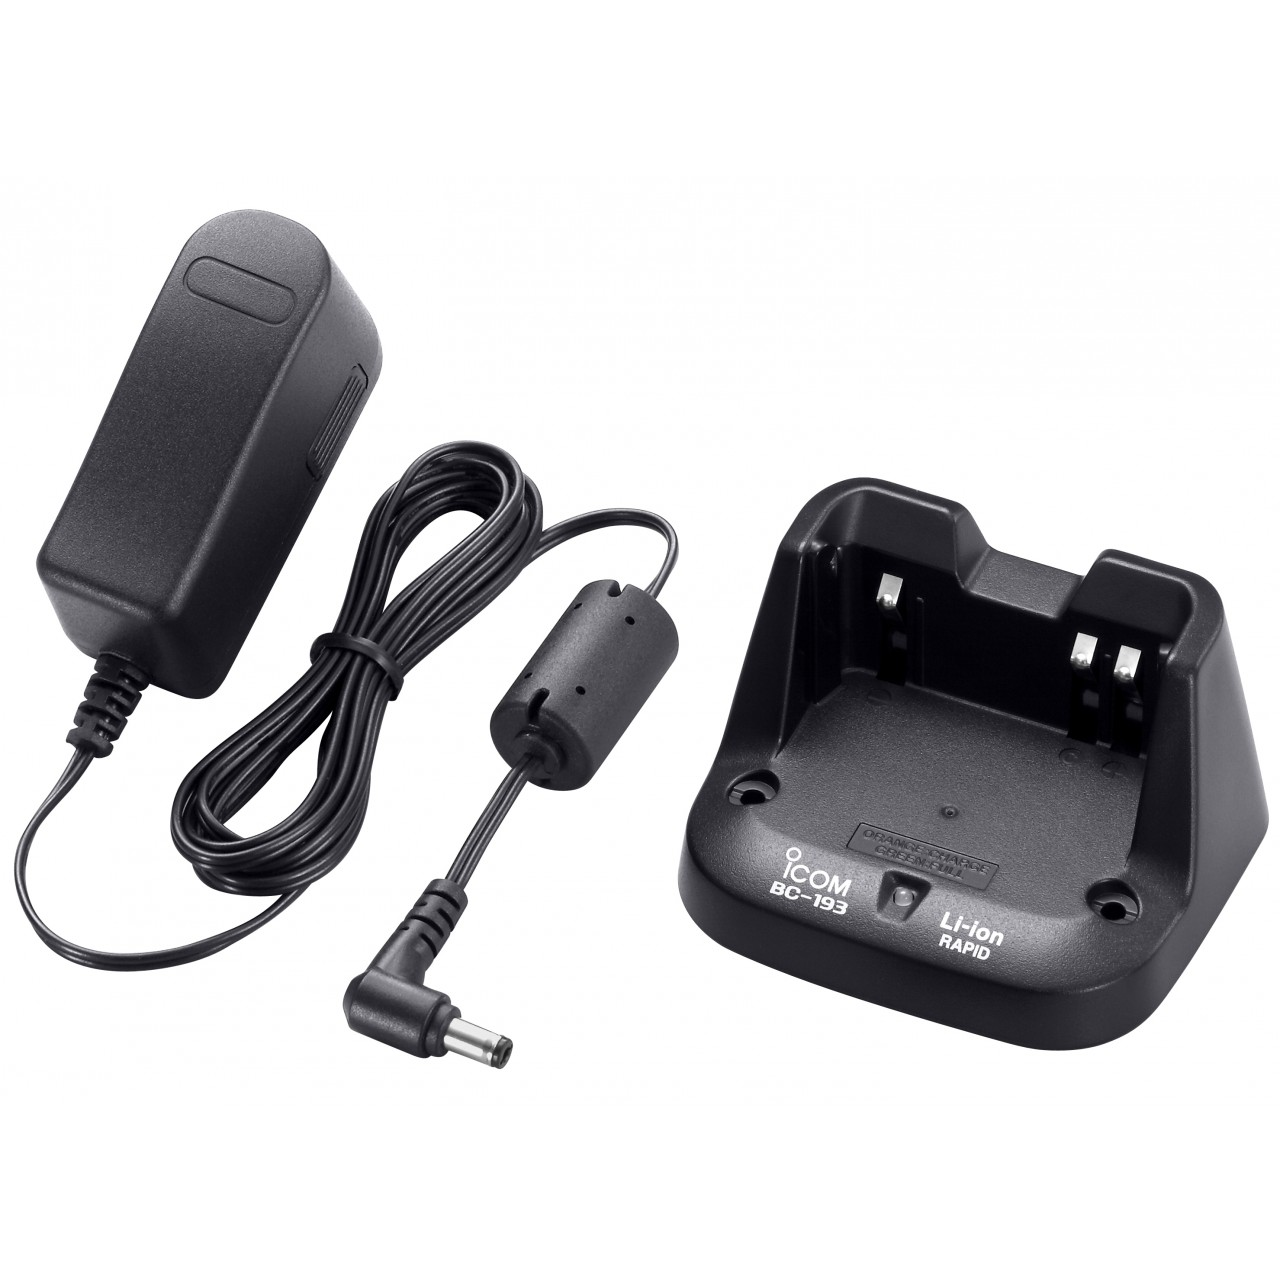 BC-193 Chargers and alimentations - ICOM